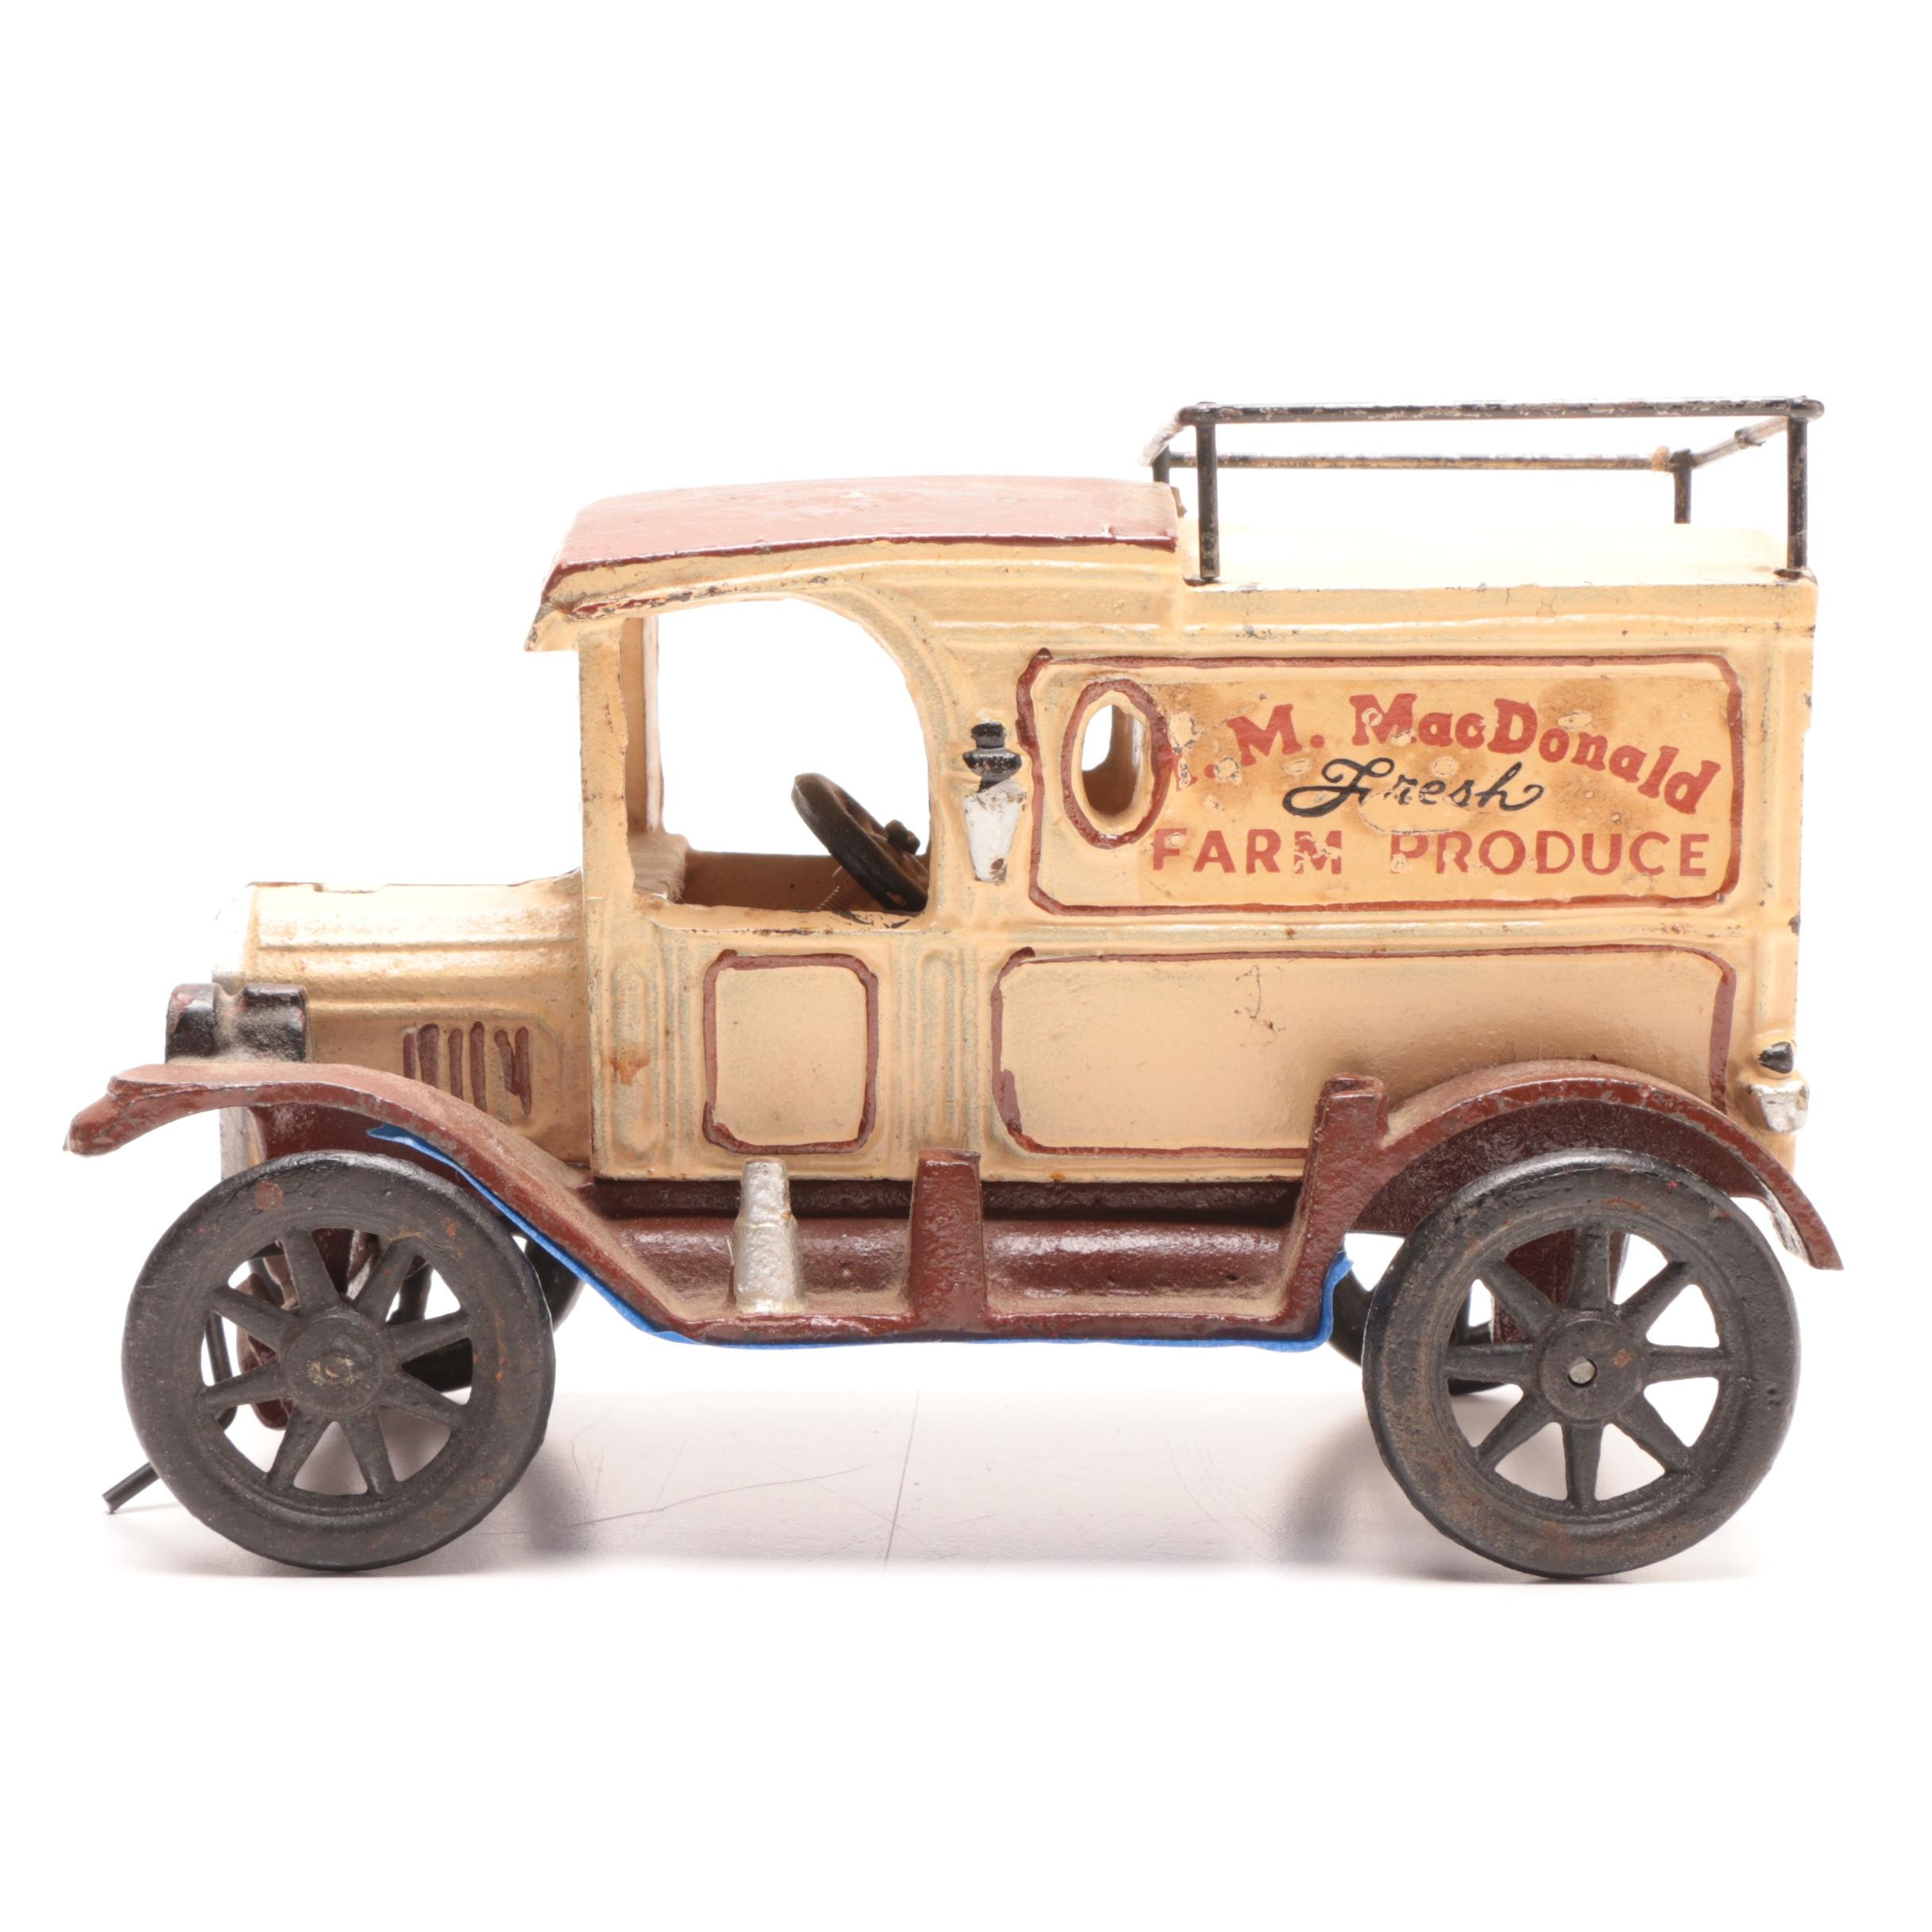 Reproduction Cast Iron M I MacDonald Fresh Farm Produce Truck